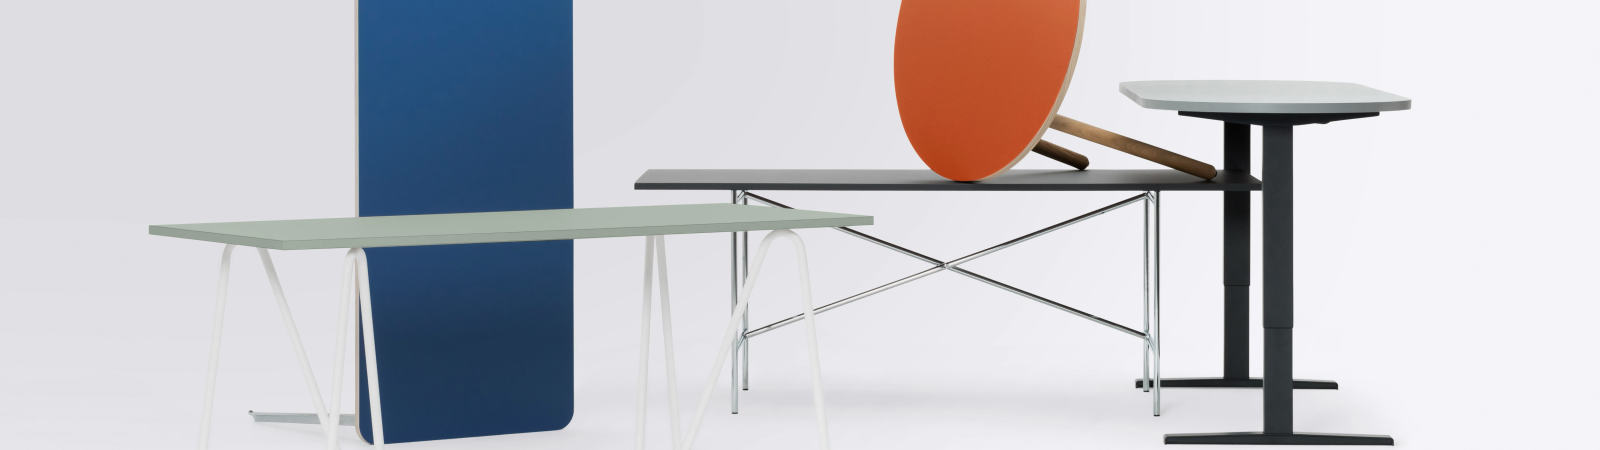 Tables & Trestles, Table bases, Lino Table Top, Table base, Table legs, Custom model, Desktop, Custom linoleum table tops